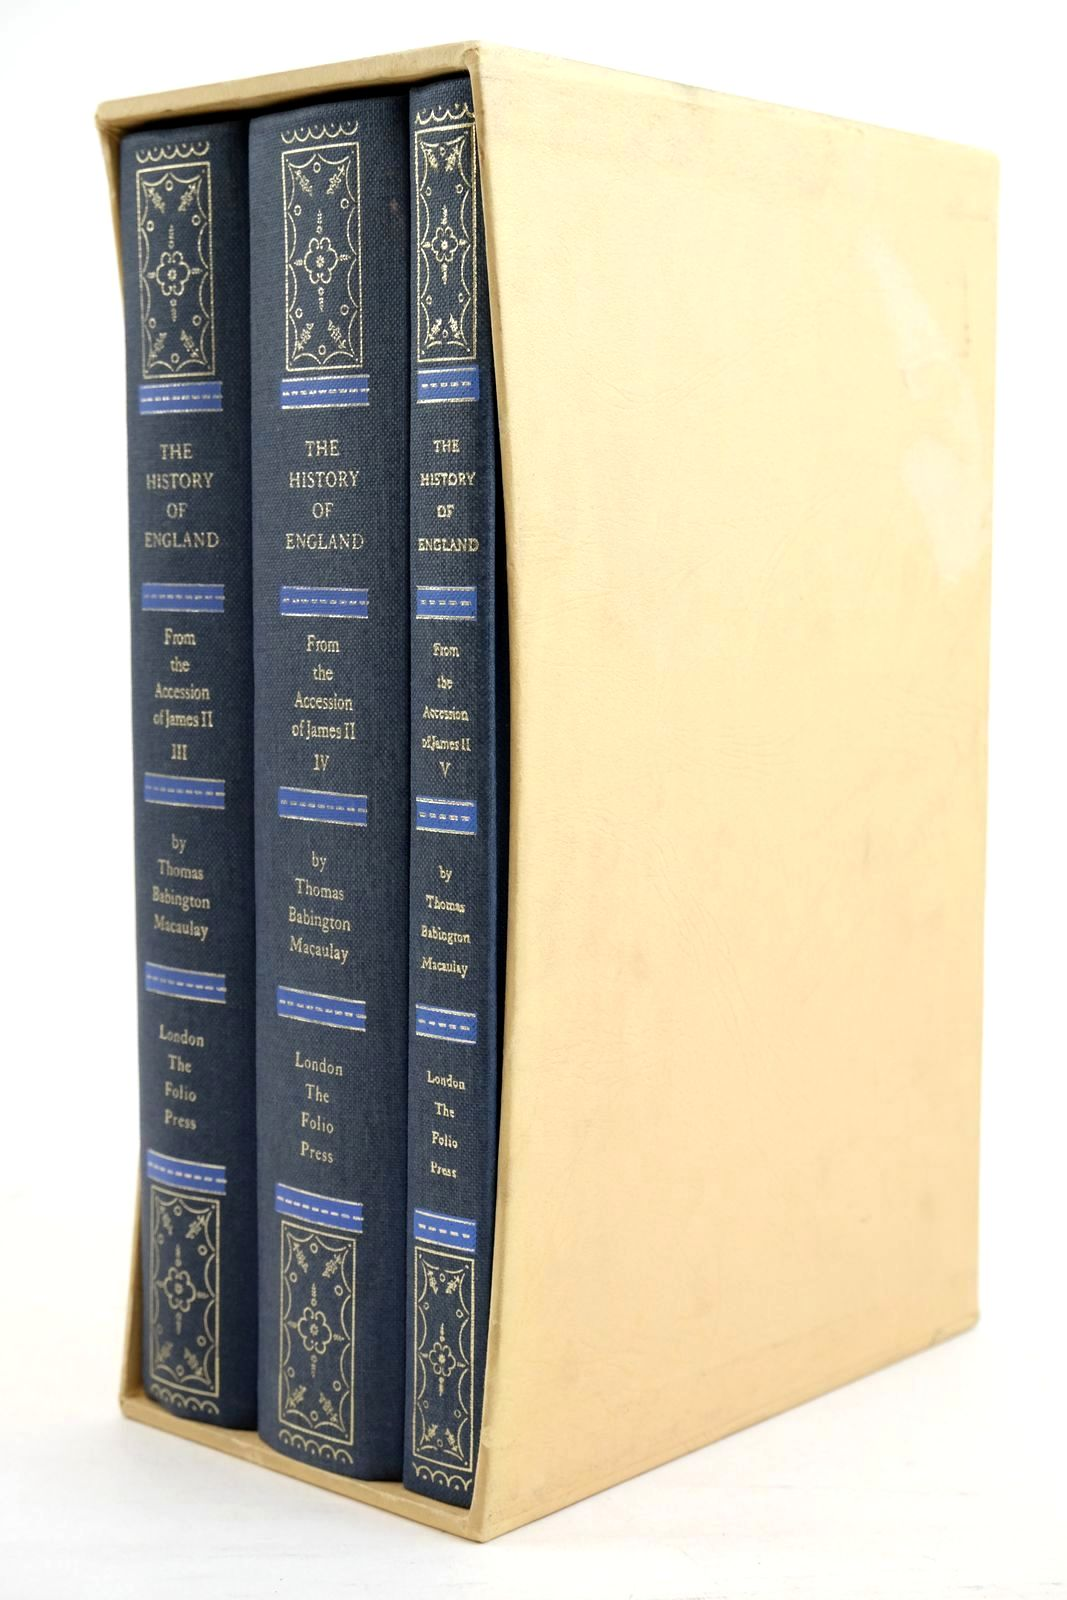 Photo of THE HISTORY OF ENGLAND FROM THE ACCESSION OF JAMES II (THREE VOLUMES) written by Macaulay, Thomas Babington Rowland, Peter published by Folio Society (STOCK CODE: 1320951)  for sale by Stella & Rose's Books